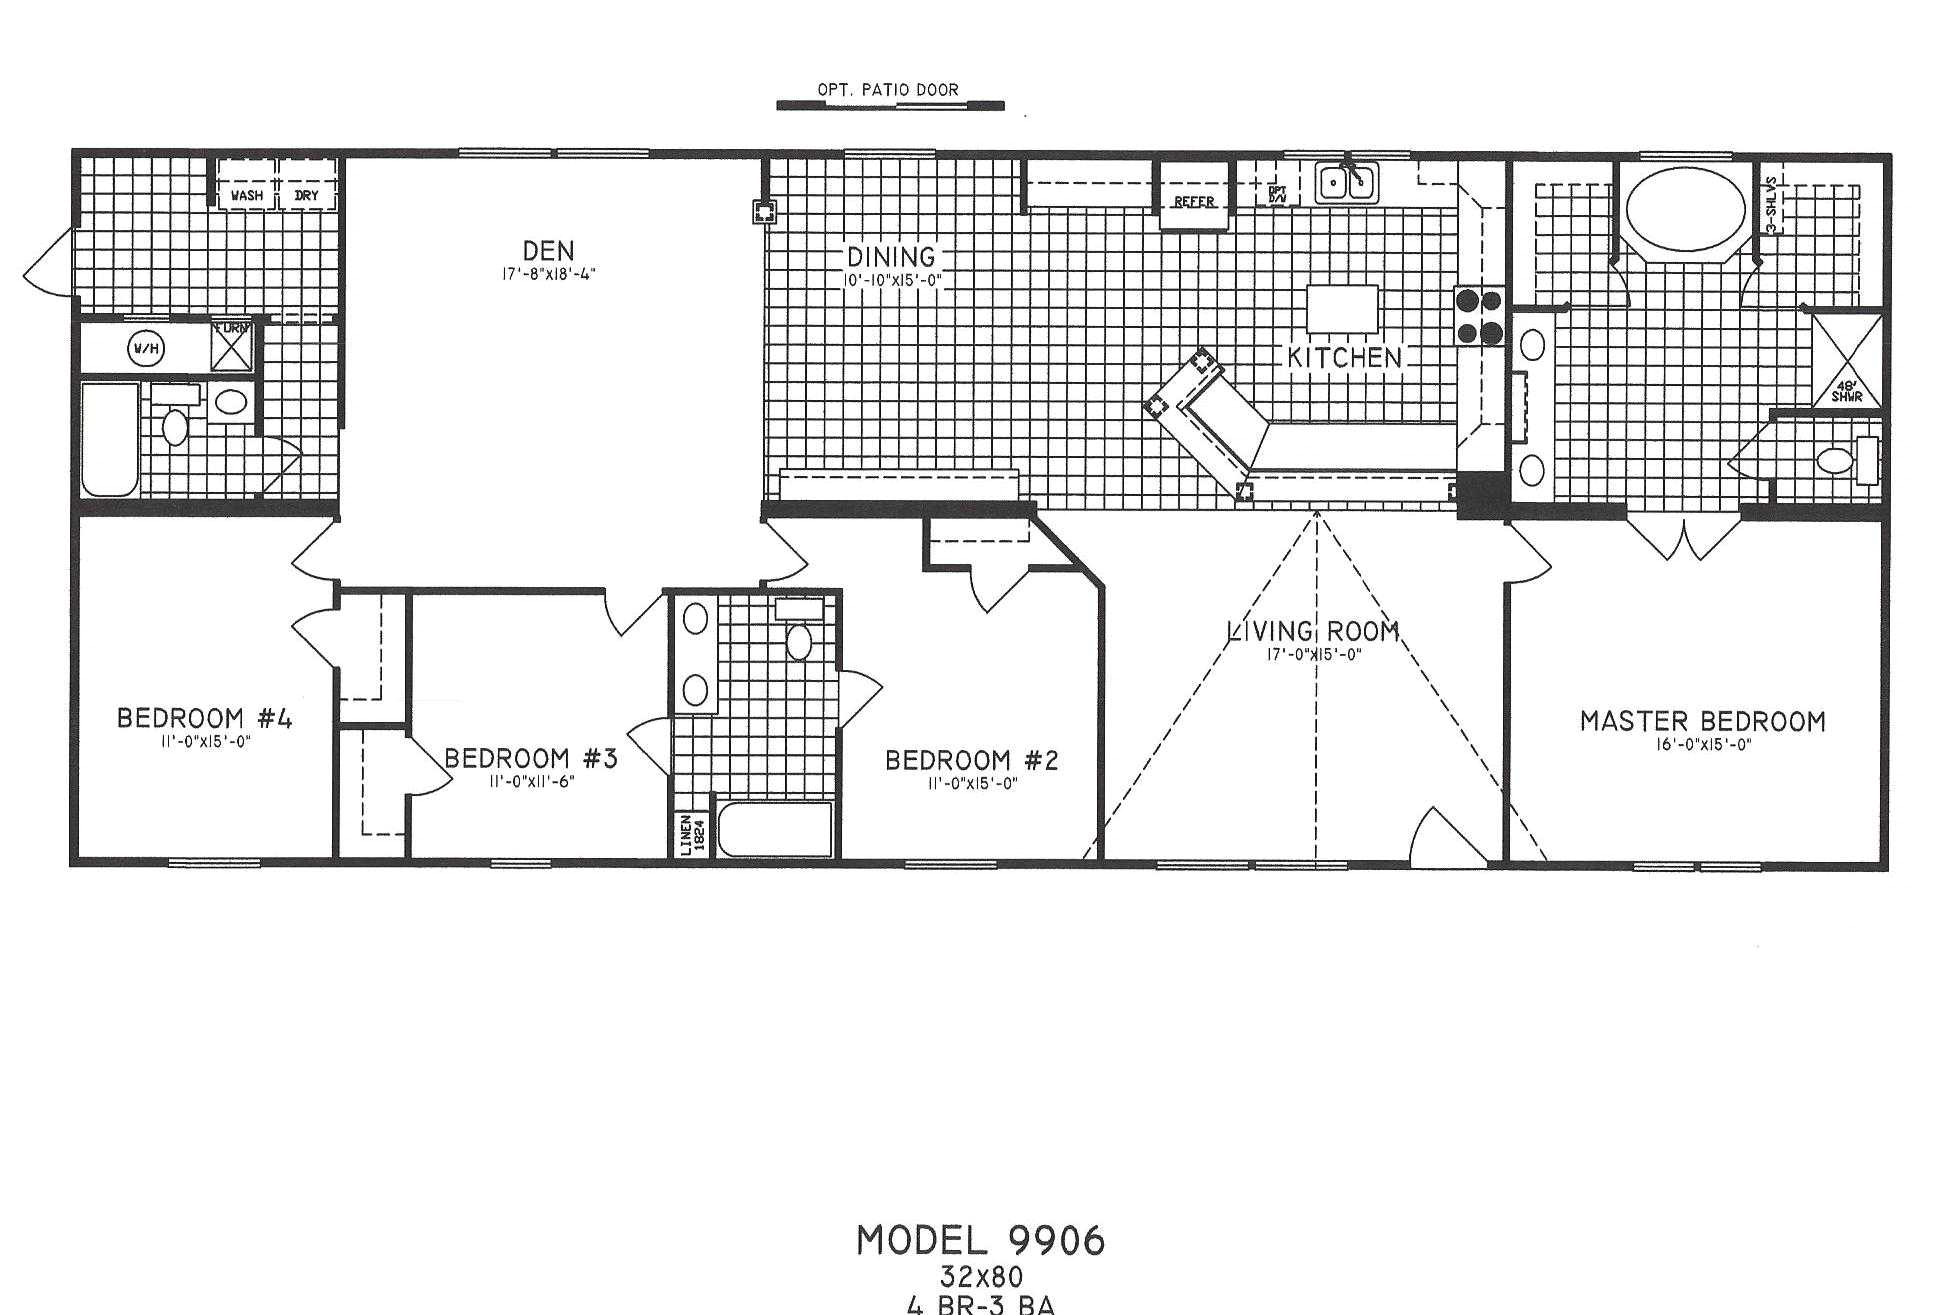 6 bedroom modular home floor plans ideas trends with plan hawks homes also attractive for 2018